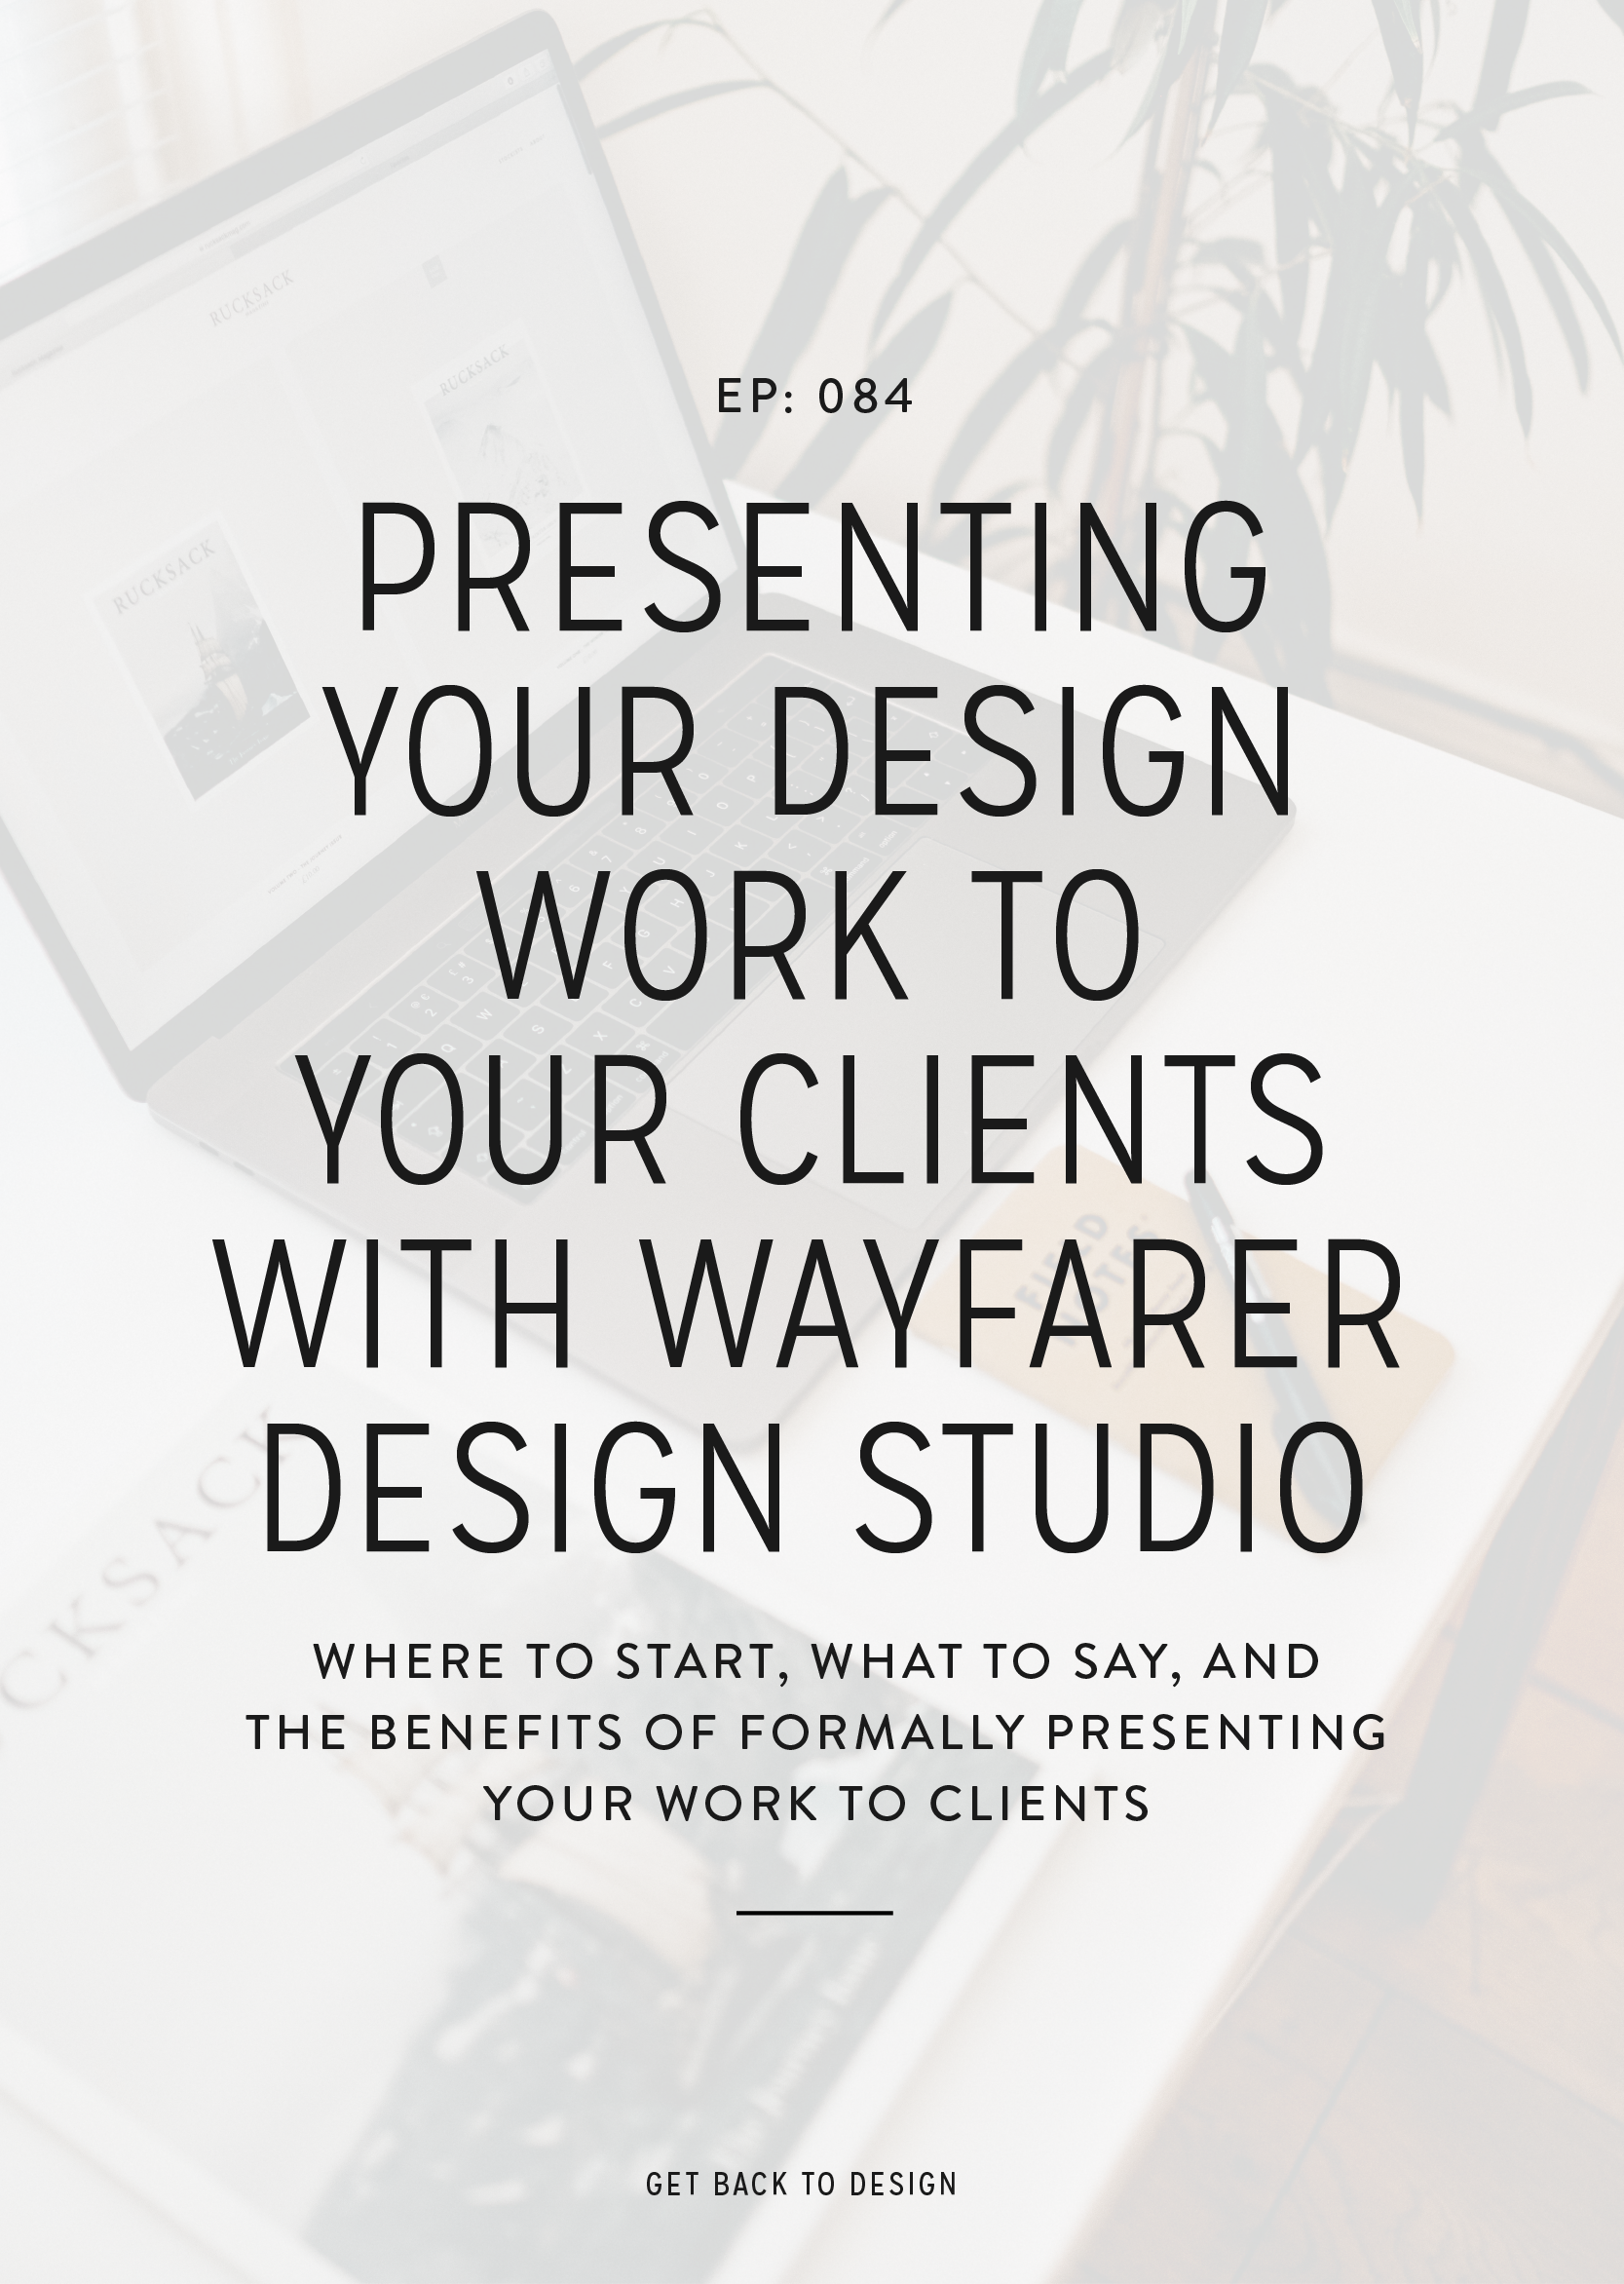 Have you ever presented your designs on a call or through a video recording for your clients? It can be a total game changer when it comes to getting less revisions, looking more like the expert you are, and the client enjoying the process even more. So today we're chatting with Abbey from Wayfarer Design Studio all about how you can present your designs to clients.